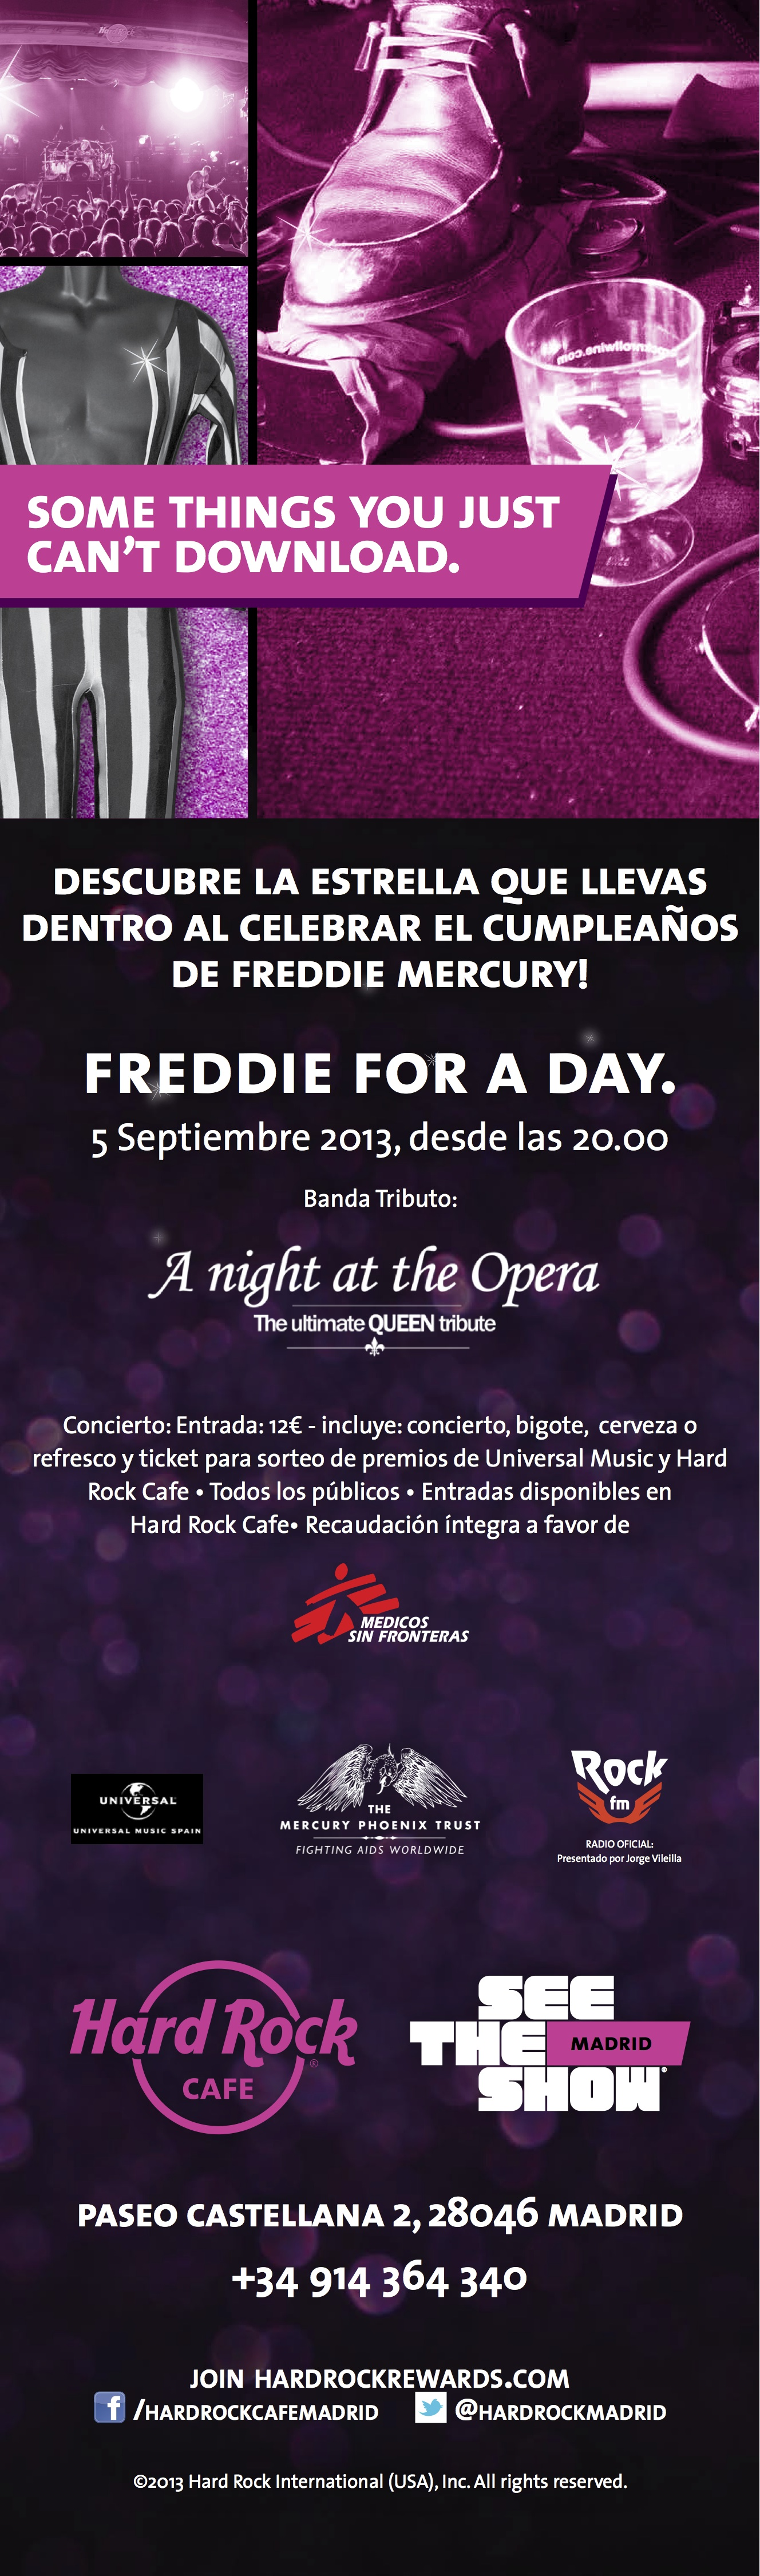 136225 - HRC 5508 - MADRID - FREDDIE FOR A DAY - 3050x900 copia